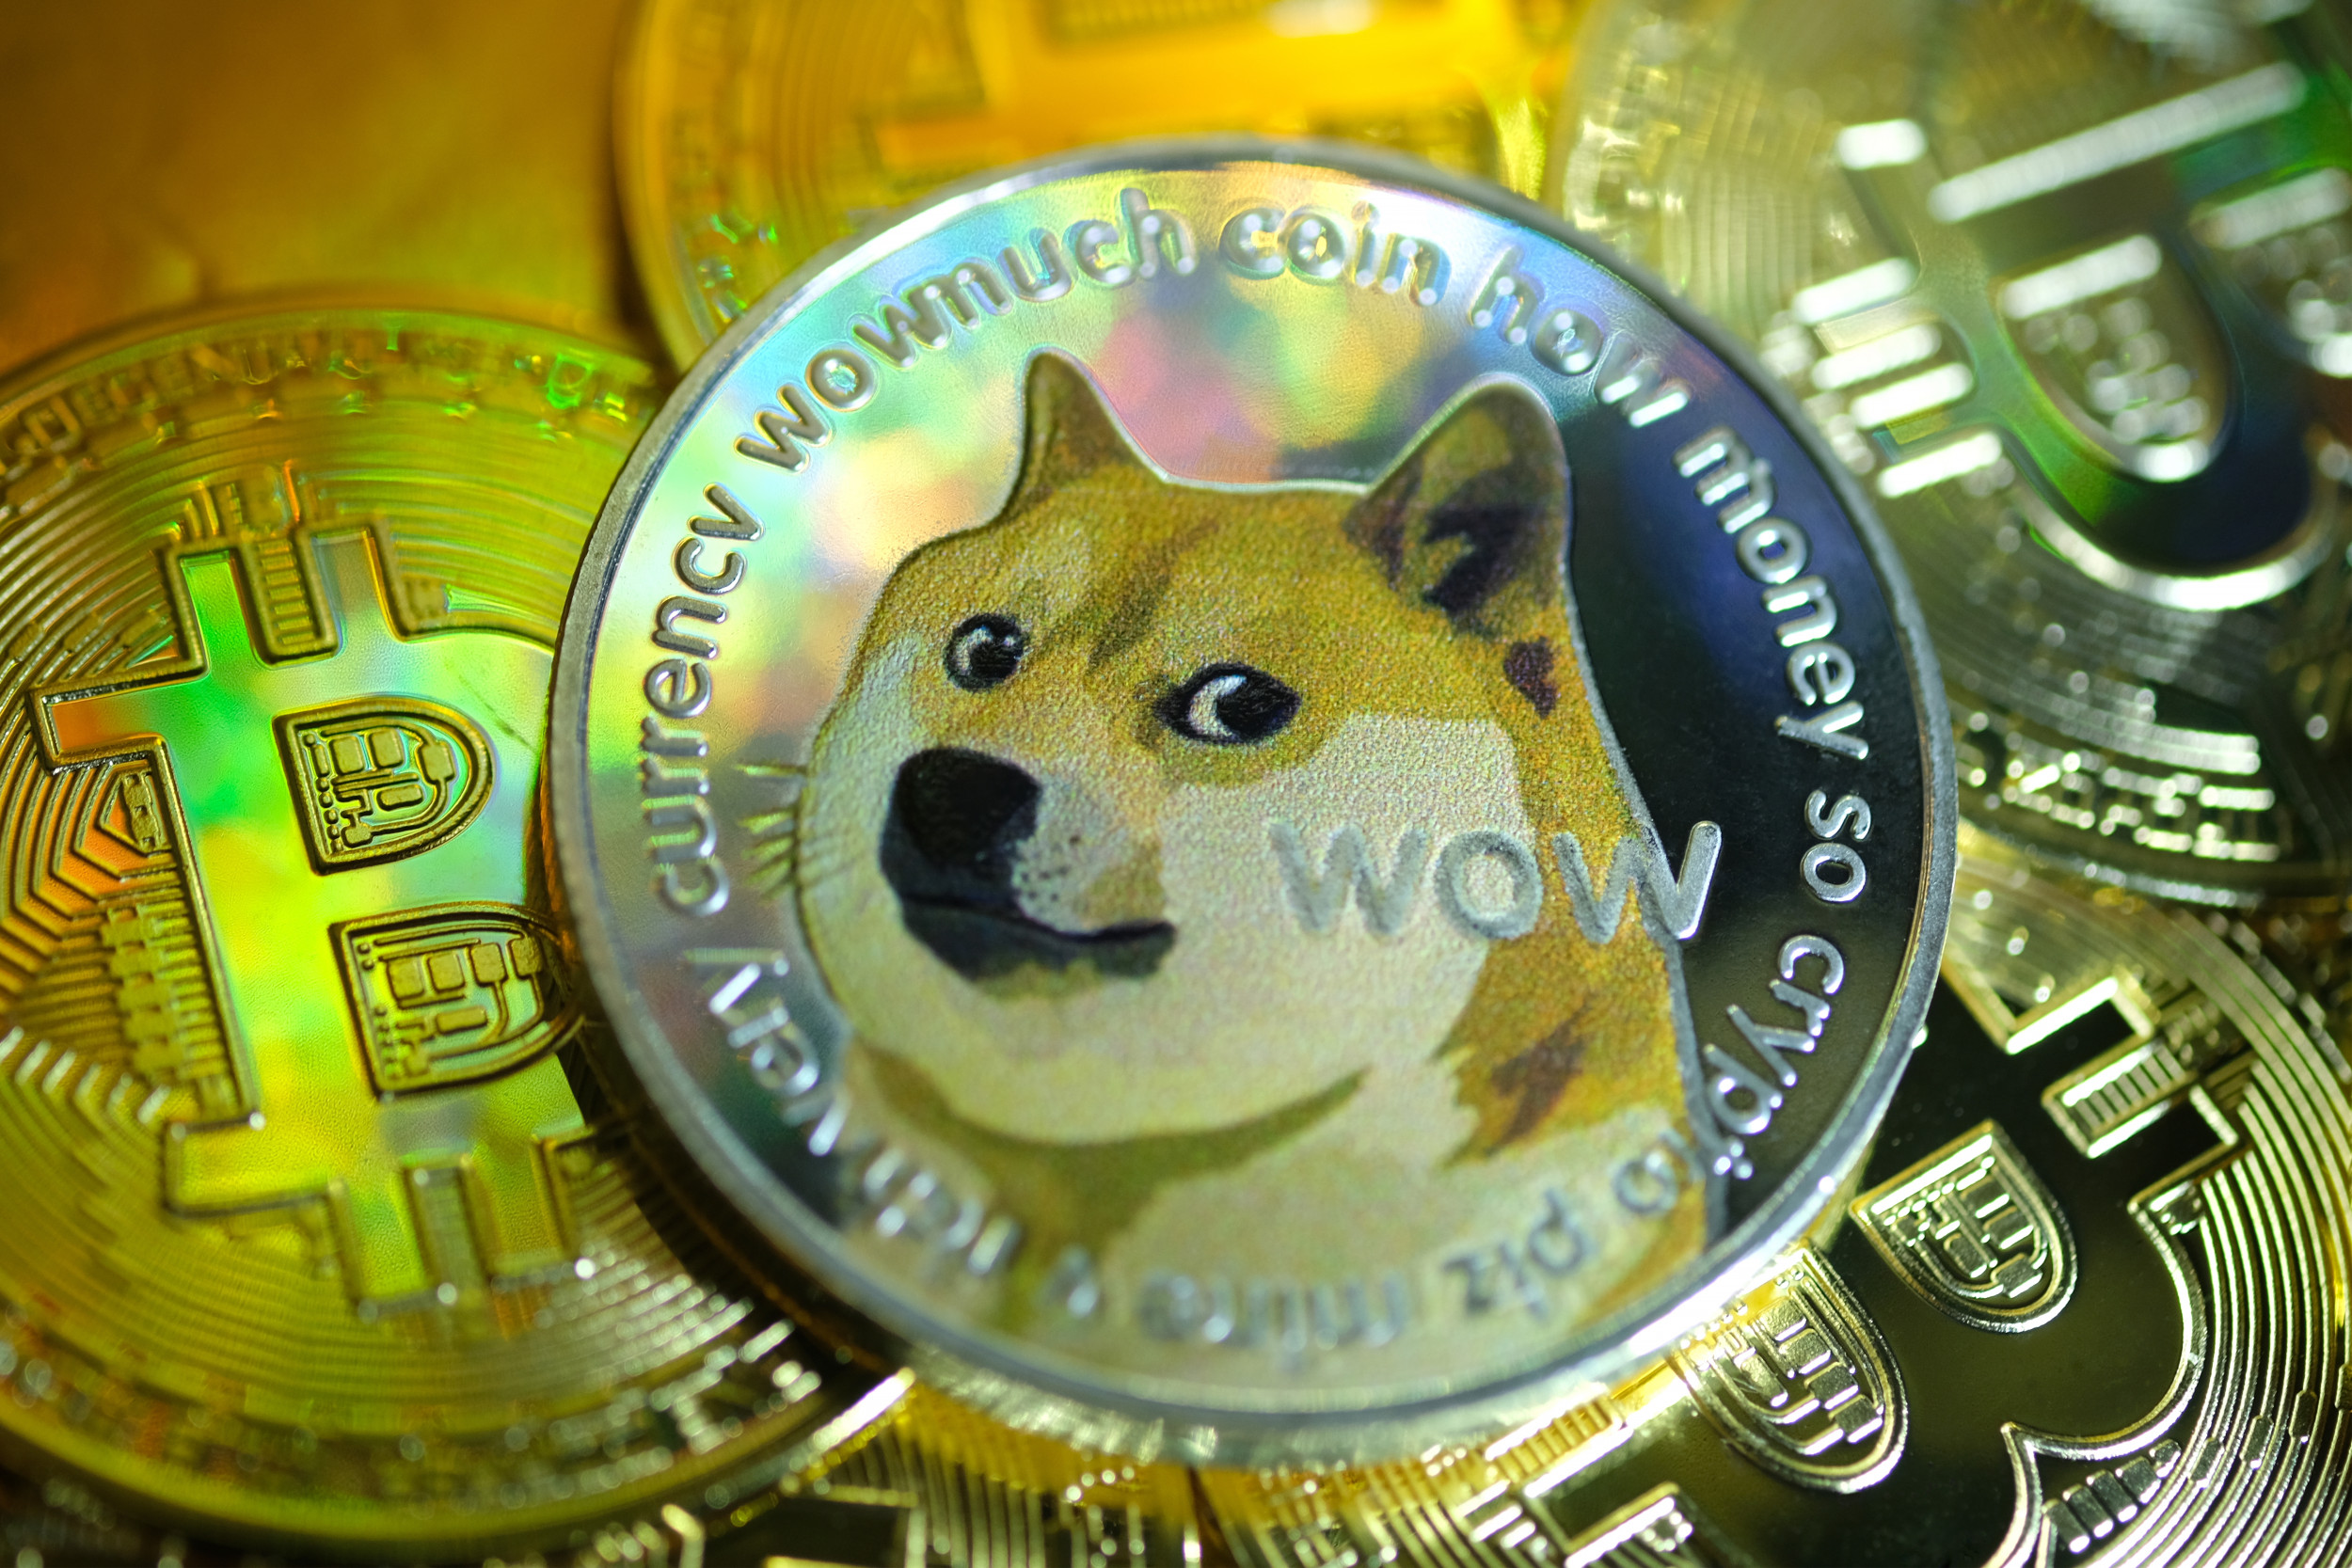 Dogecoin Tanks Amid Elon Musk SNL Appearance, Prompting Wave of Ridicule